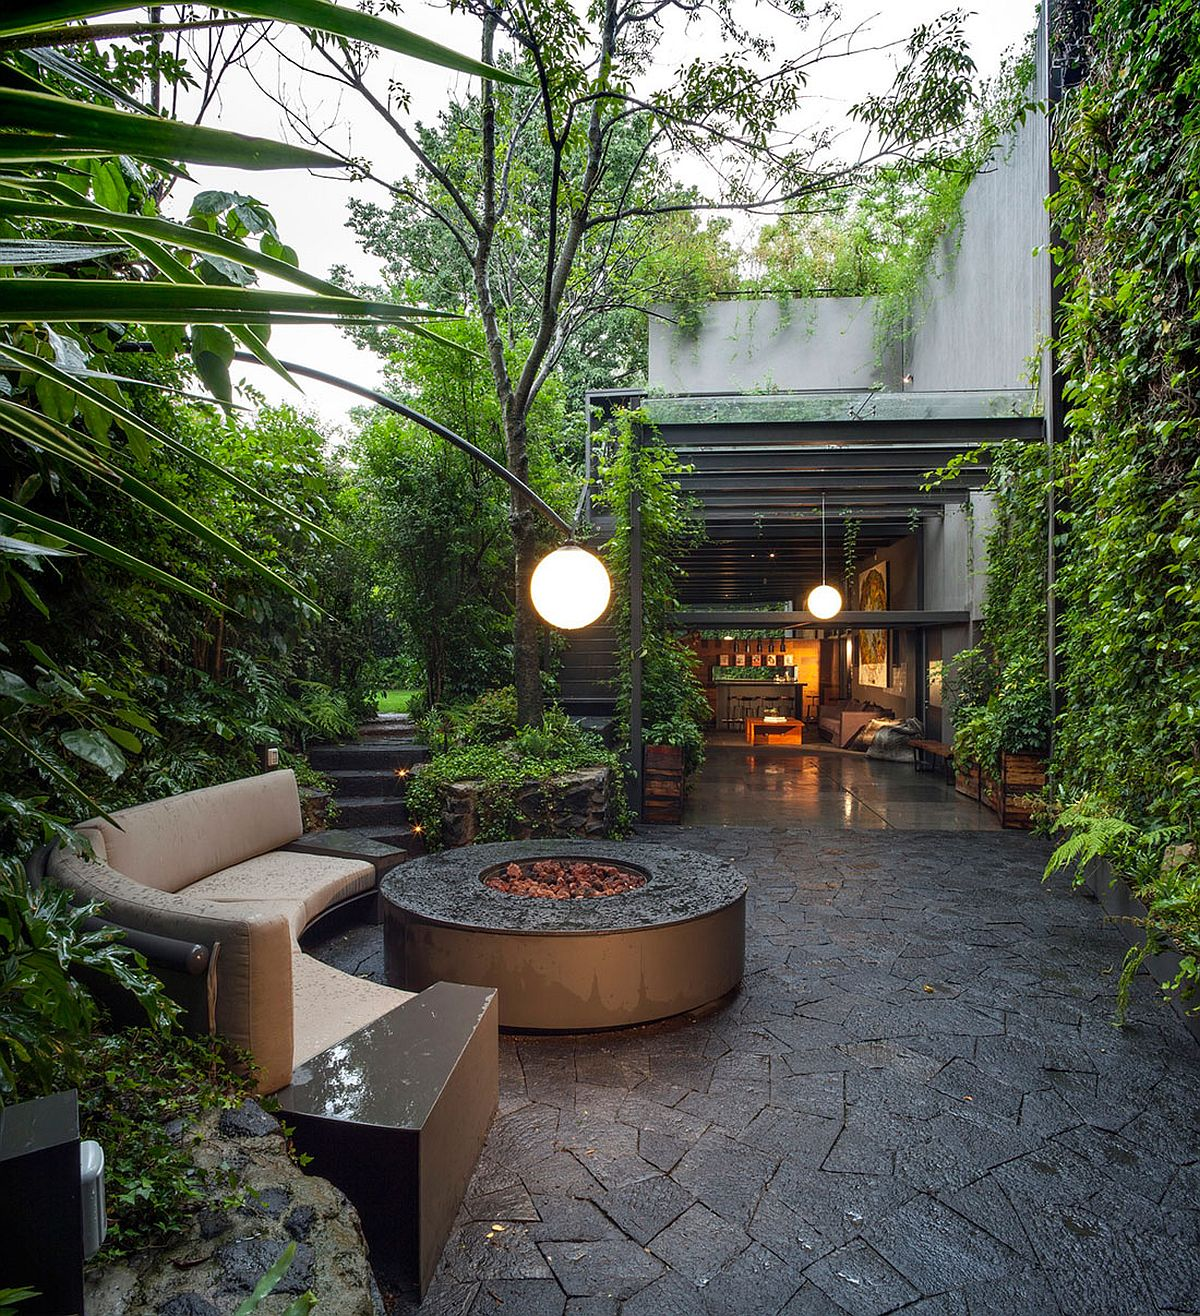 Entry courtyard and outdoor lounge of the lavish Mexican home Lavish Outdoors: Stunning Courtyards and a Cloak of Greenery Enchant at Casa O'